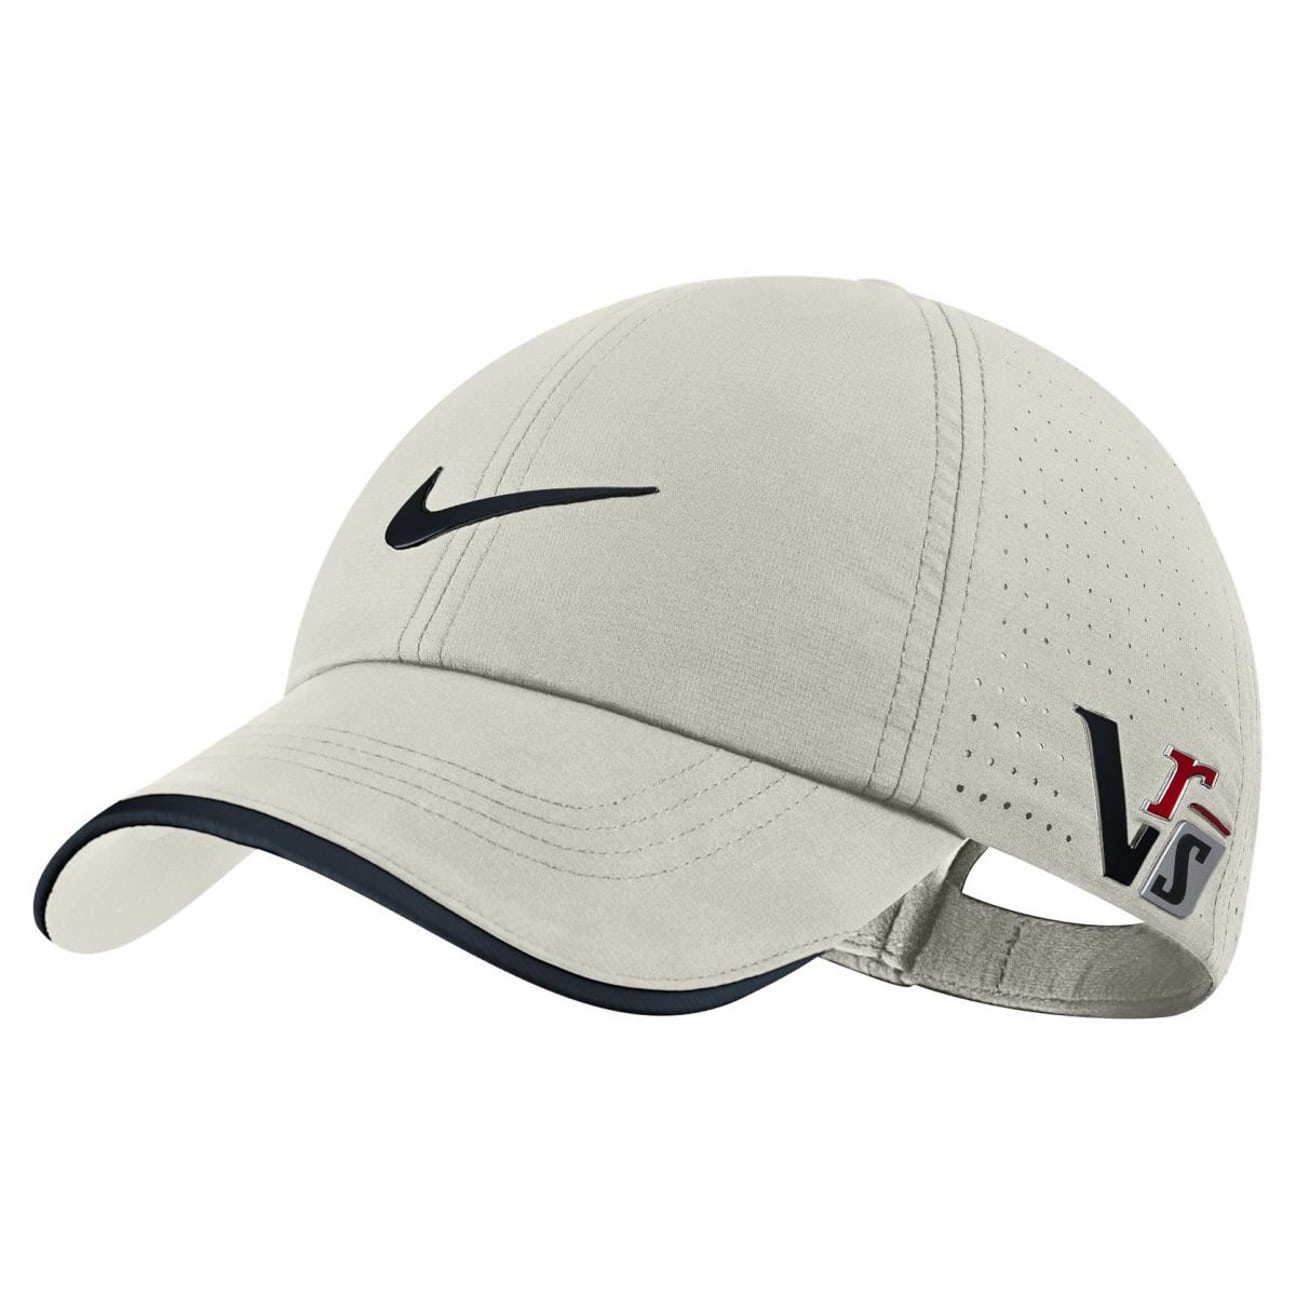 good out x 50% off superior quality Casquette Tour Perforated Golf by Nike